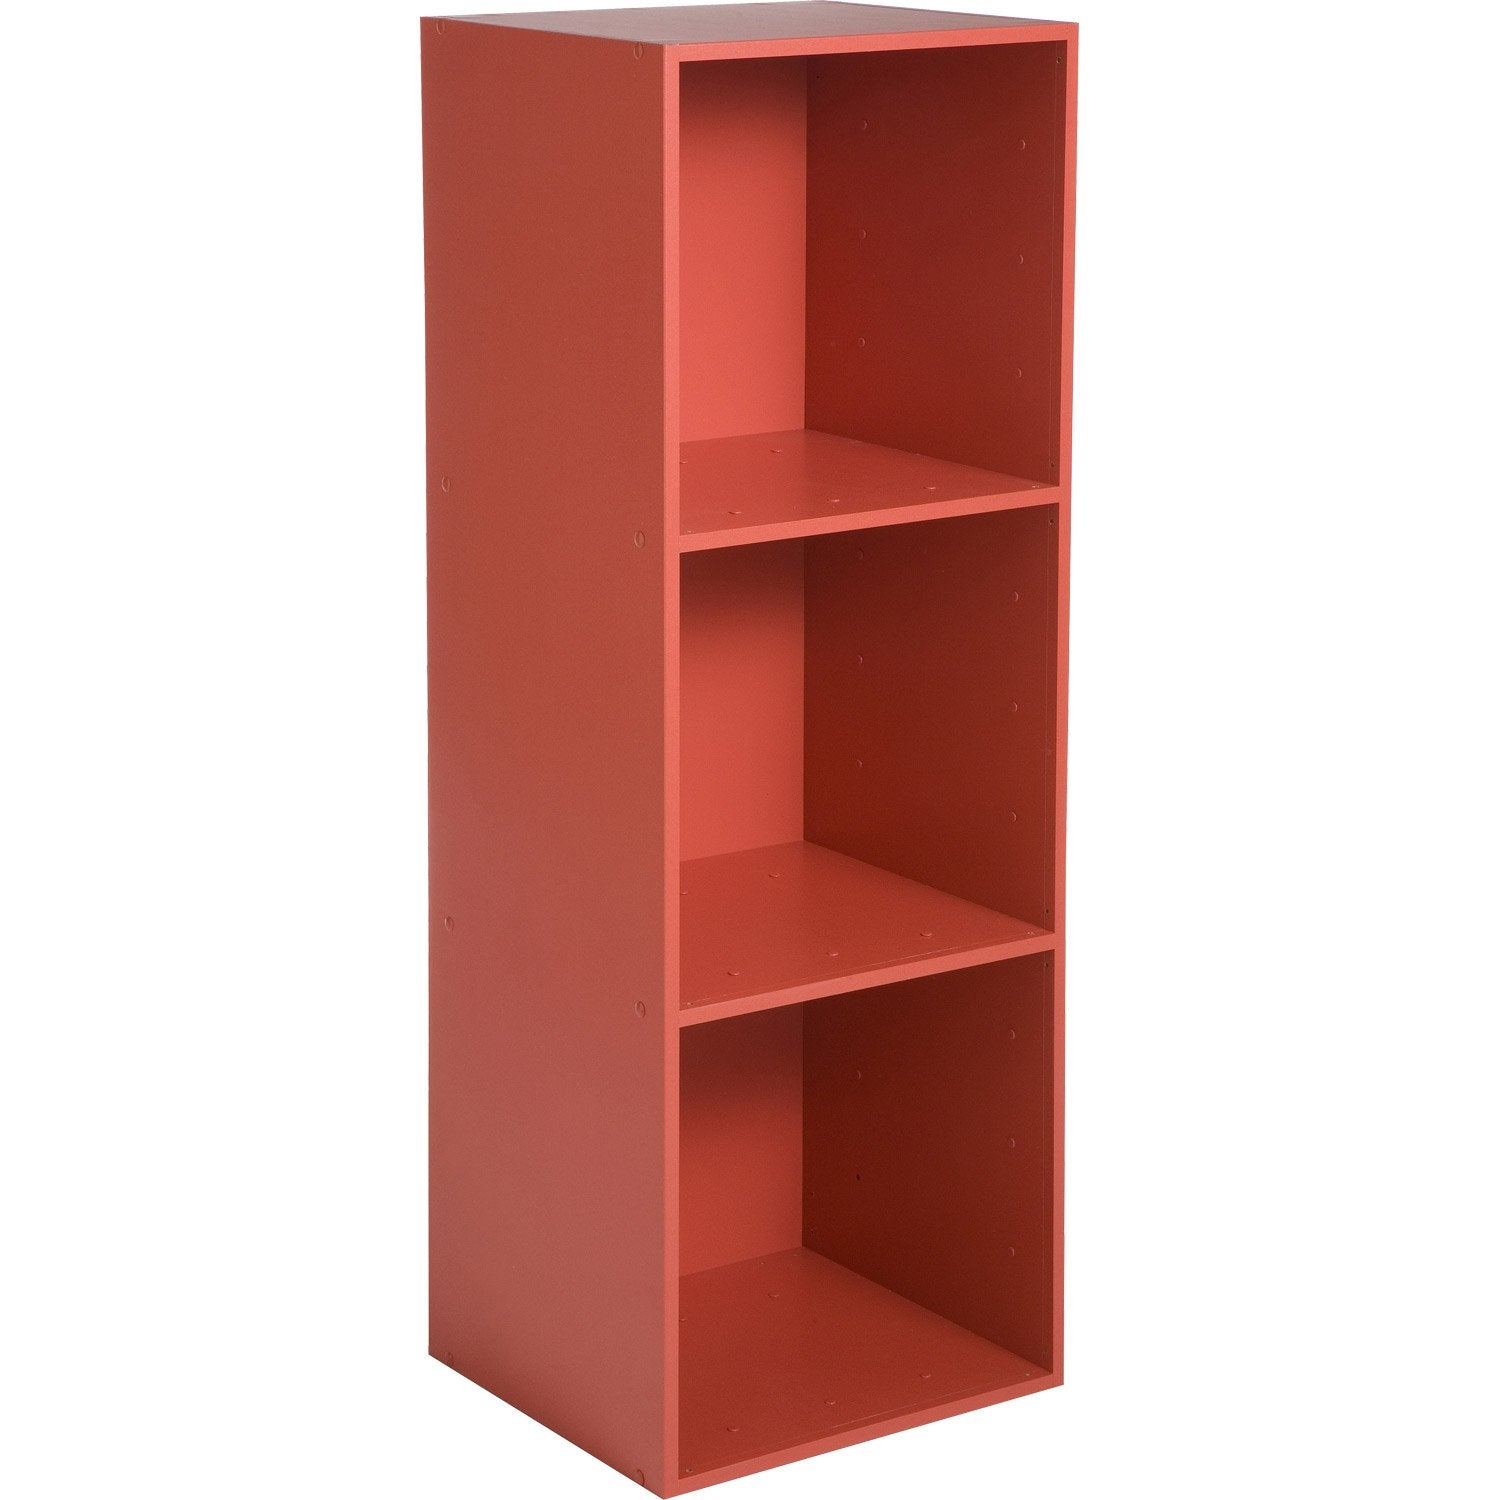 Etag re 3 cases multikaz rouge x x for Etagere niche murale